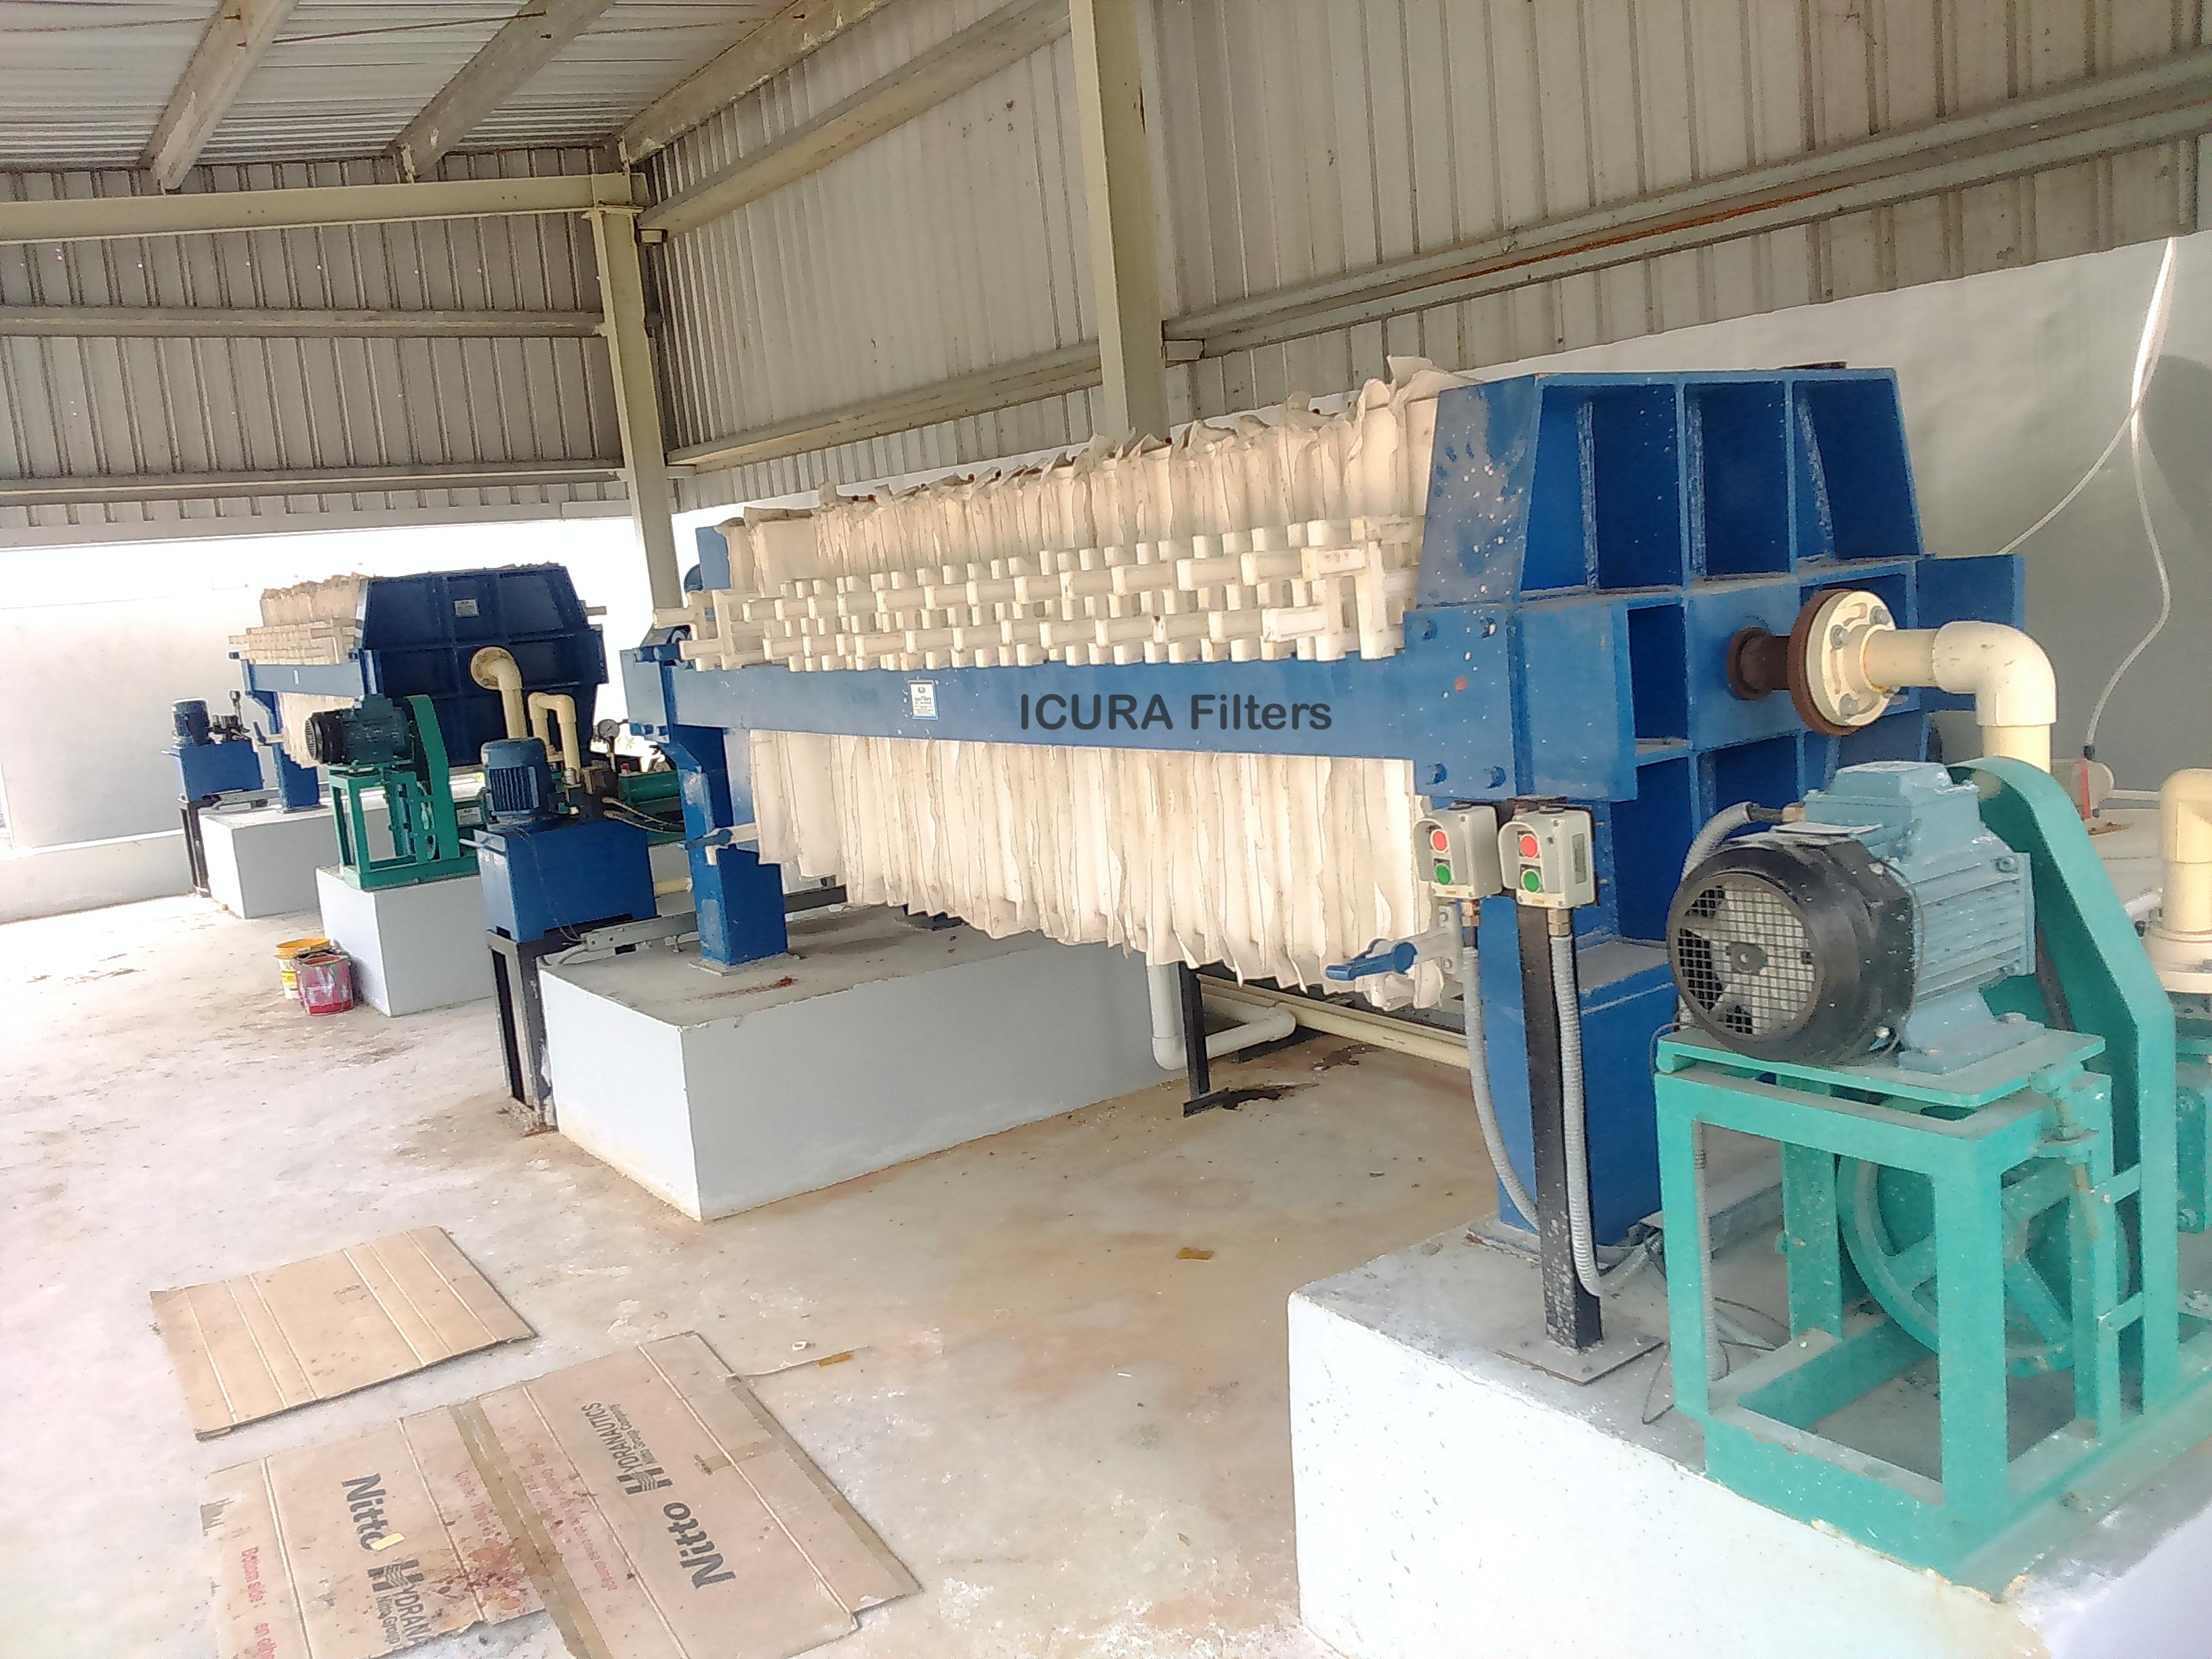 Filter Press at Pigment manufacturing company